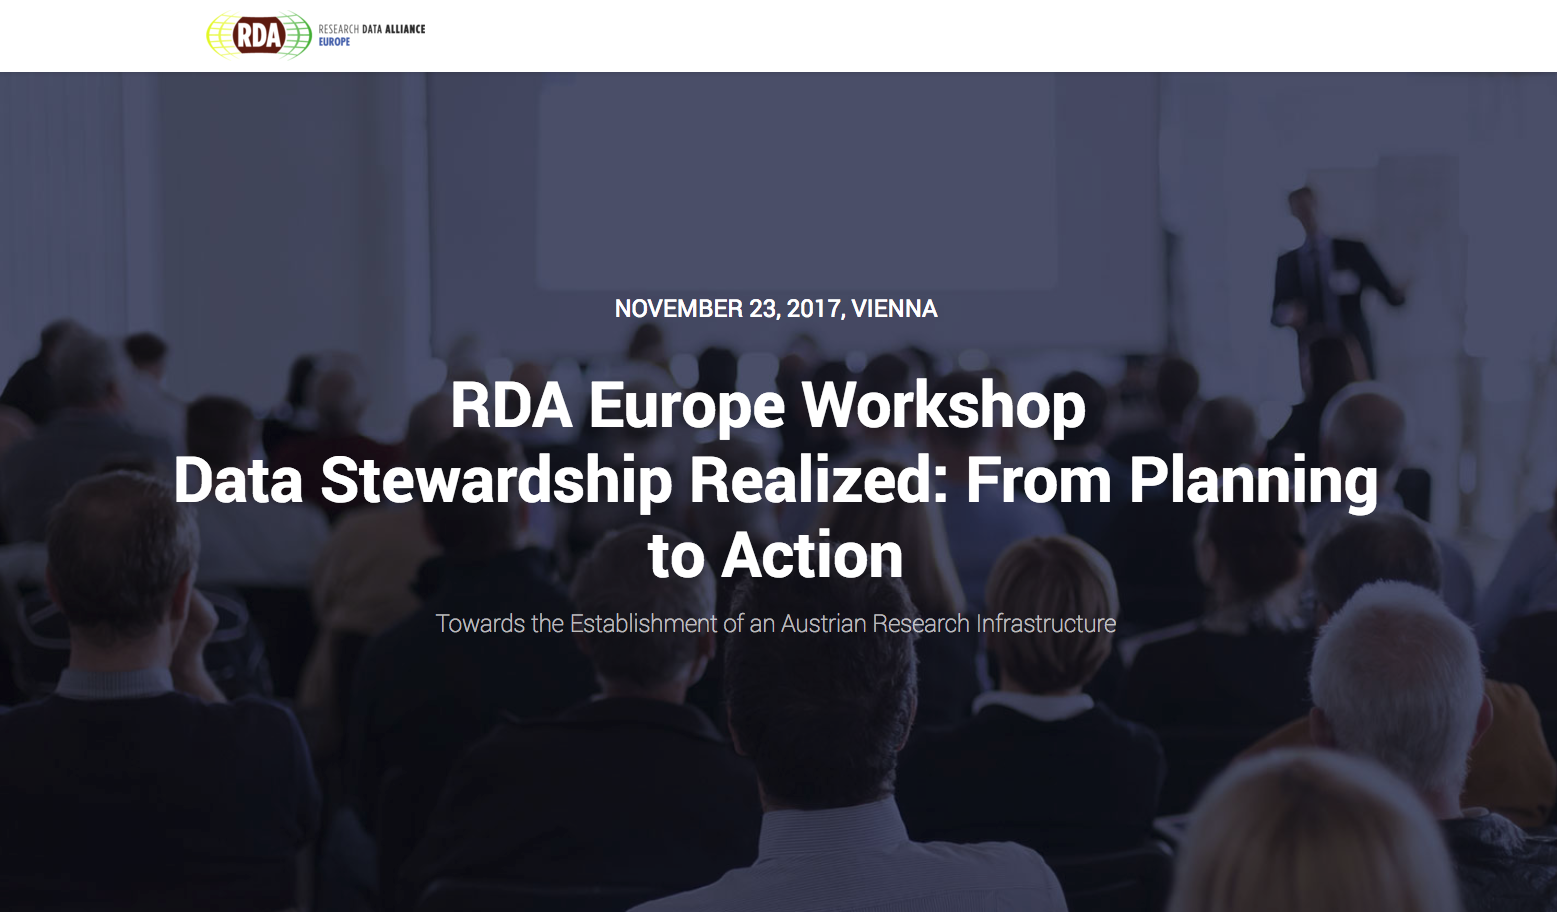 Data Stewardship Realized: From Planning to Action - 23 November 2017, Vienna, Austria